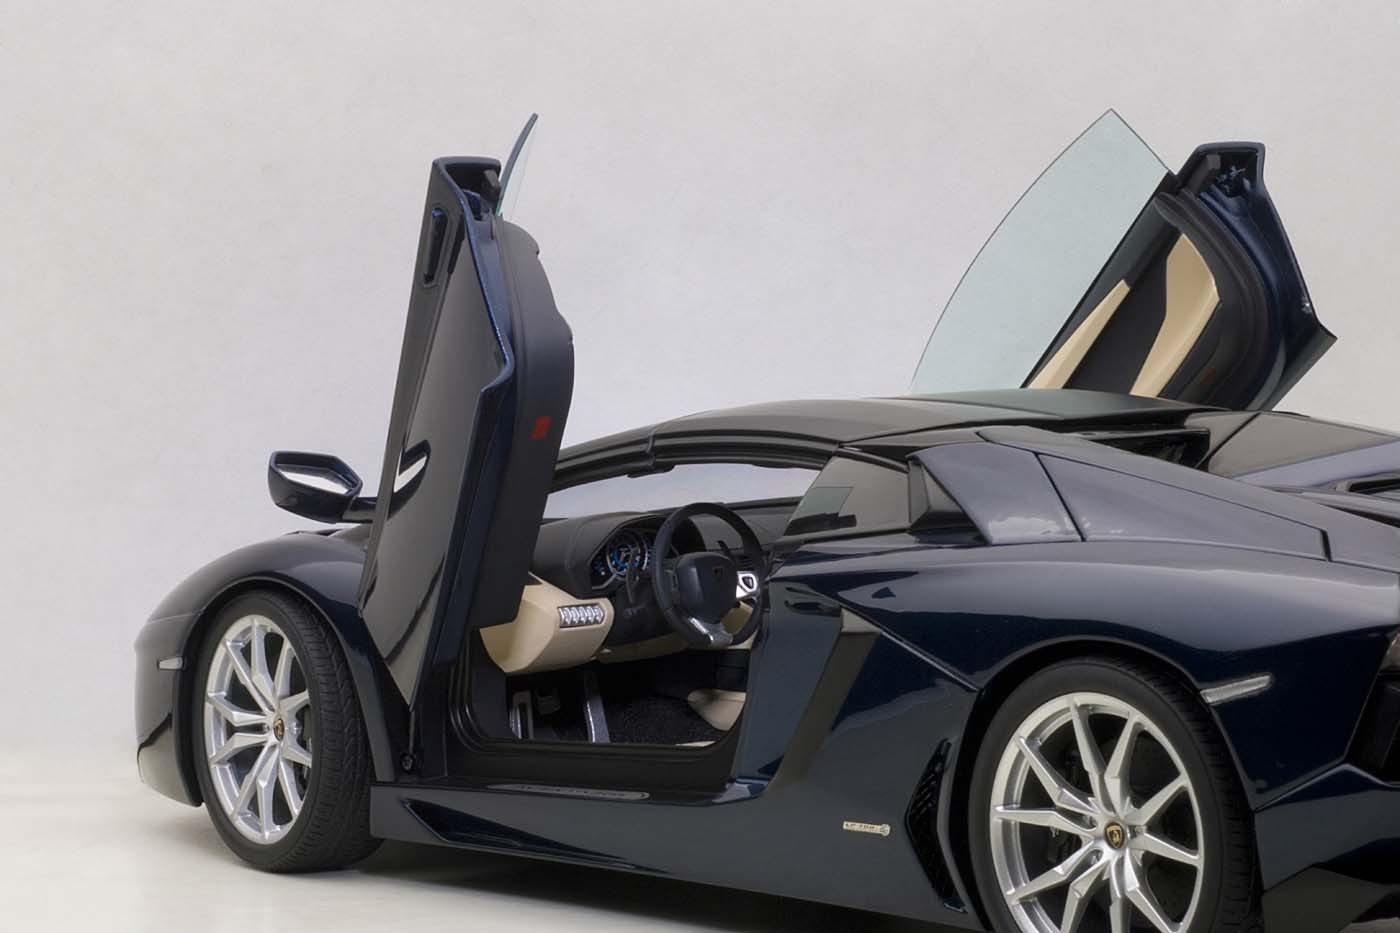 Veneno Hd Wallpaper Autoart Highly Detailed Die Cast Model Metalic Dark Blue